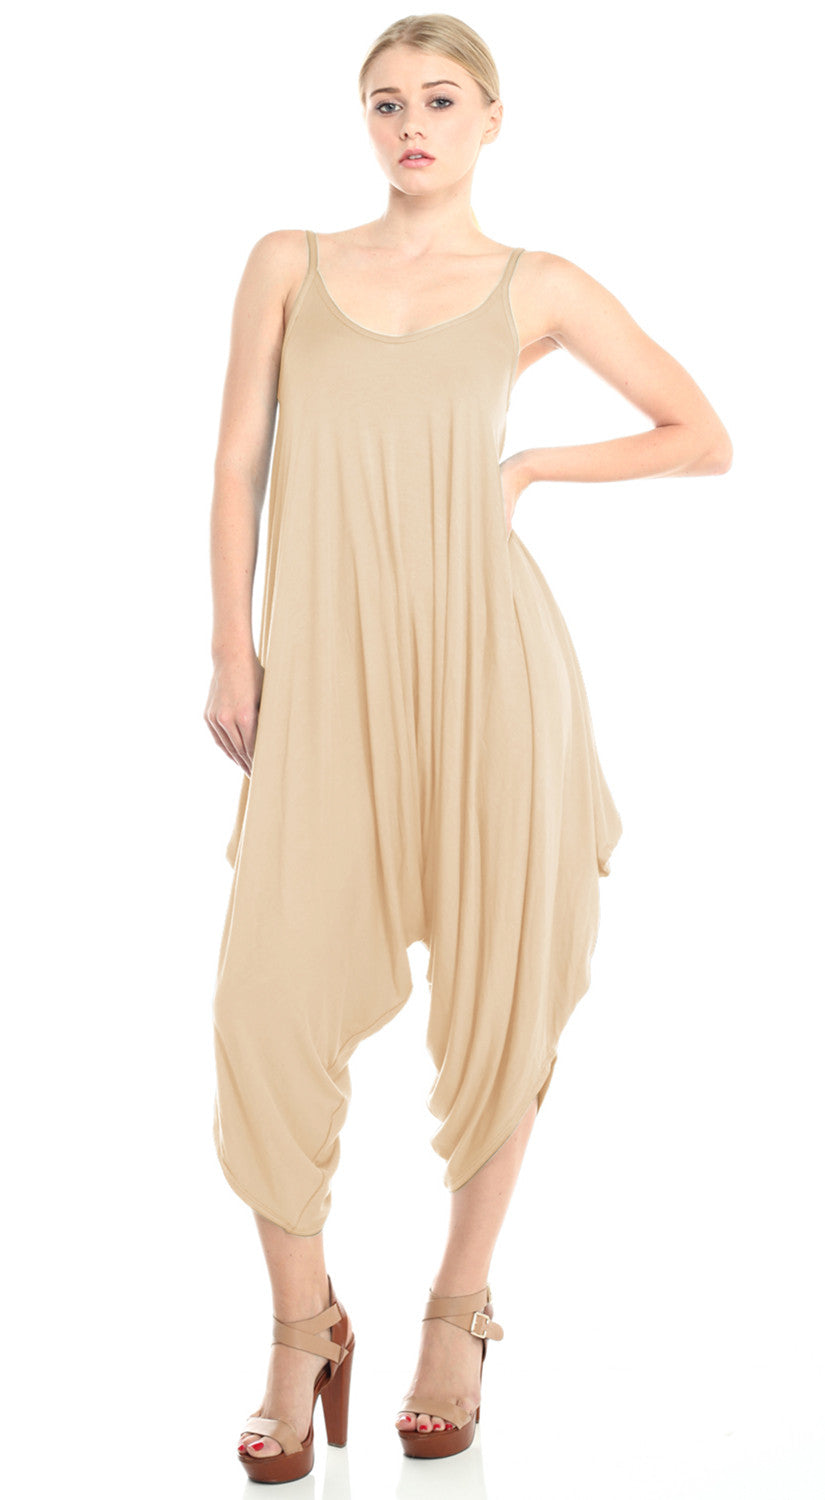 Solid Spaghetti Strap Harem Jumper - Taupe S2